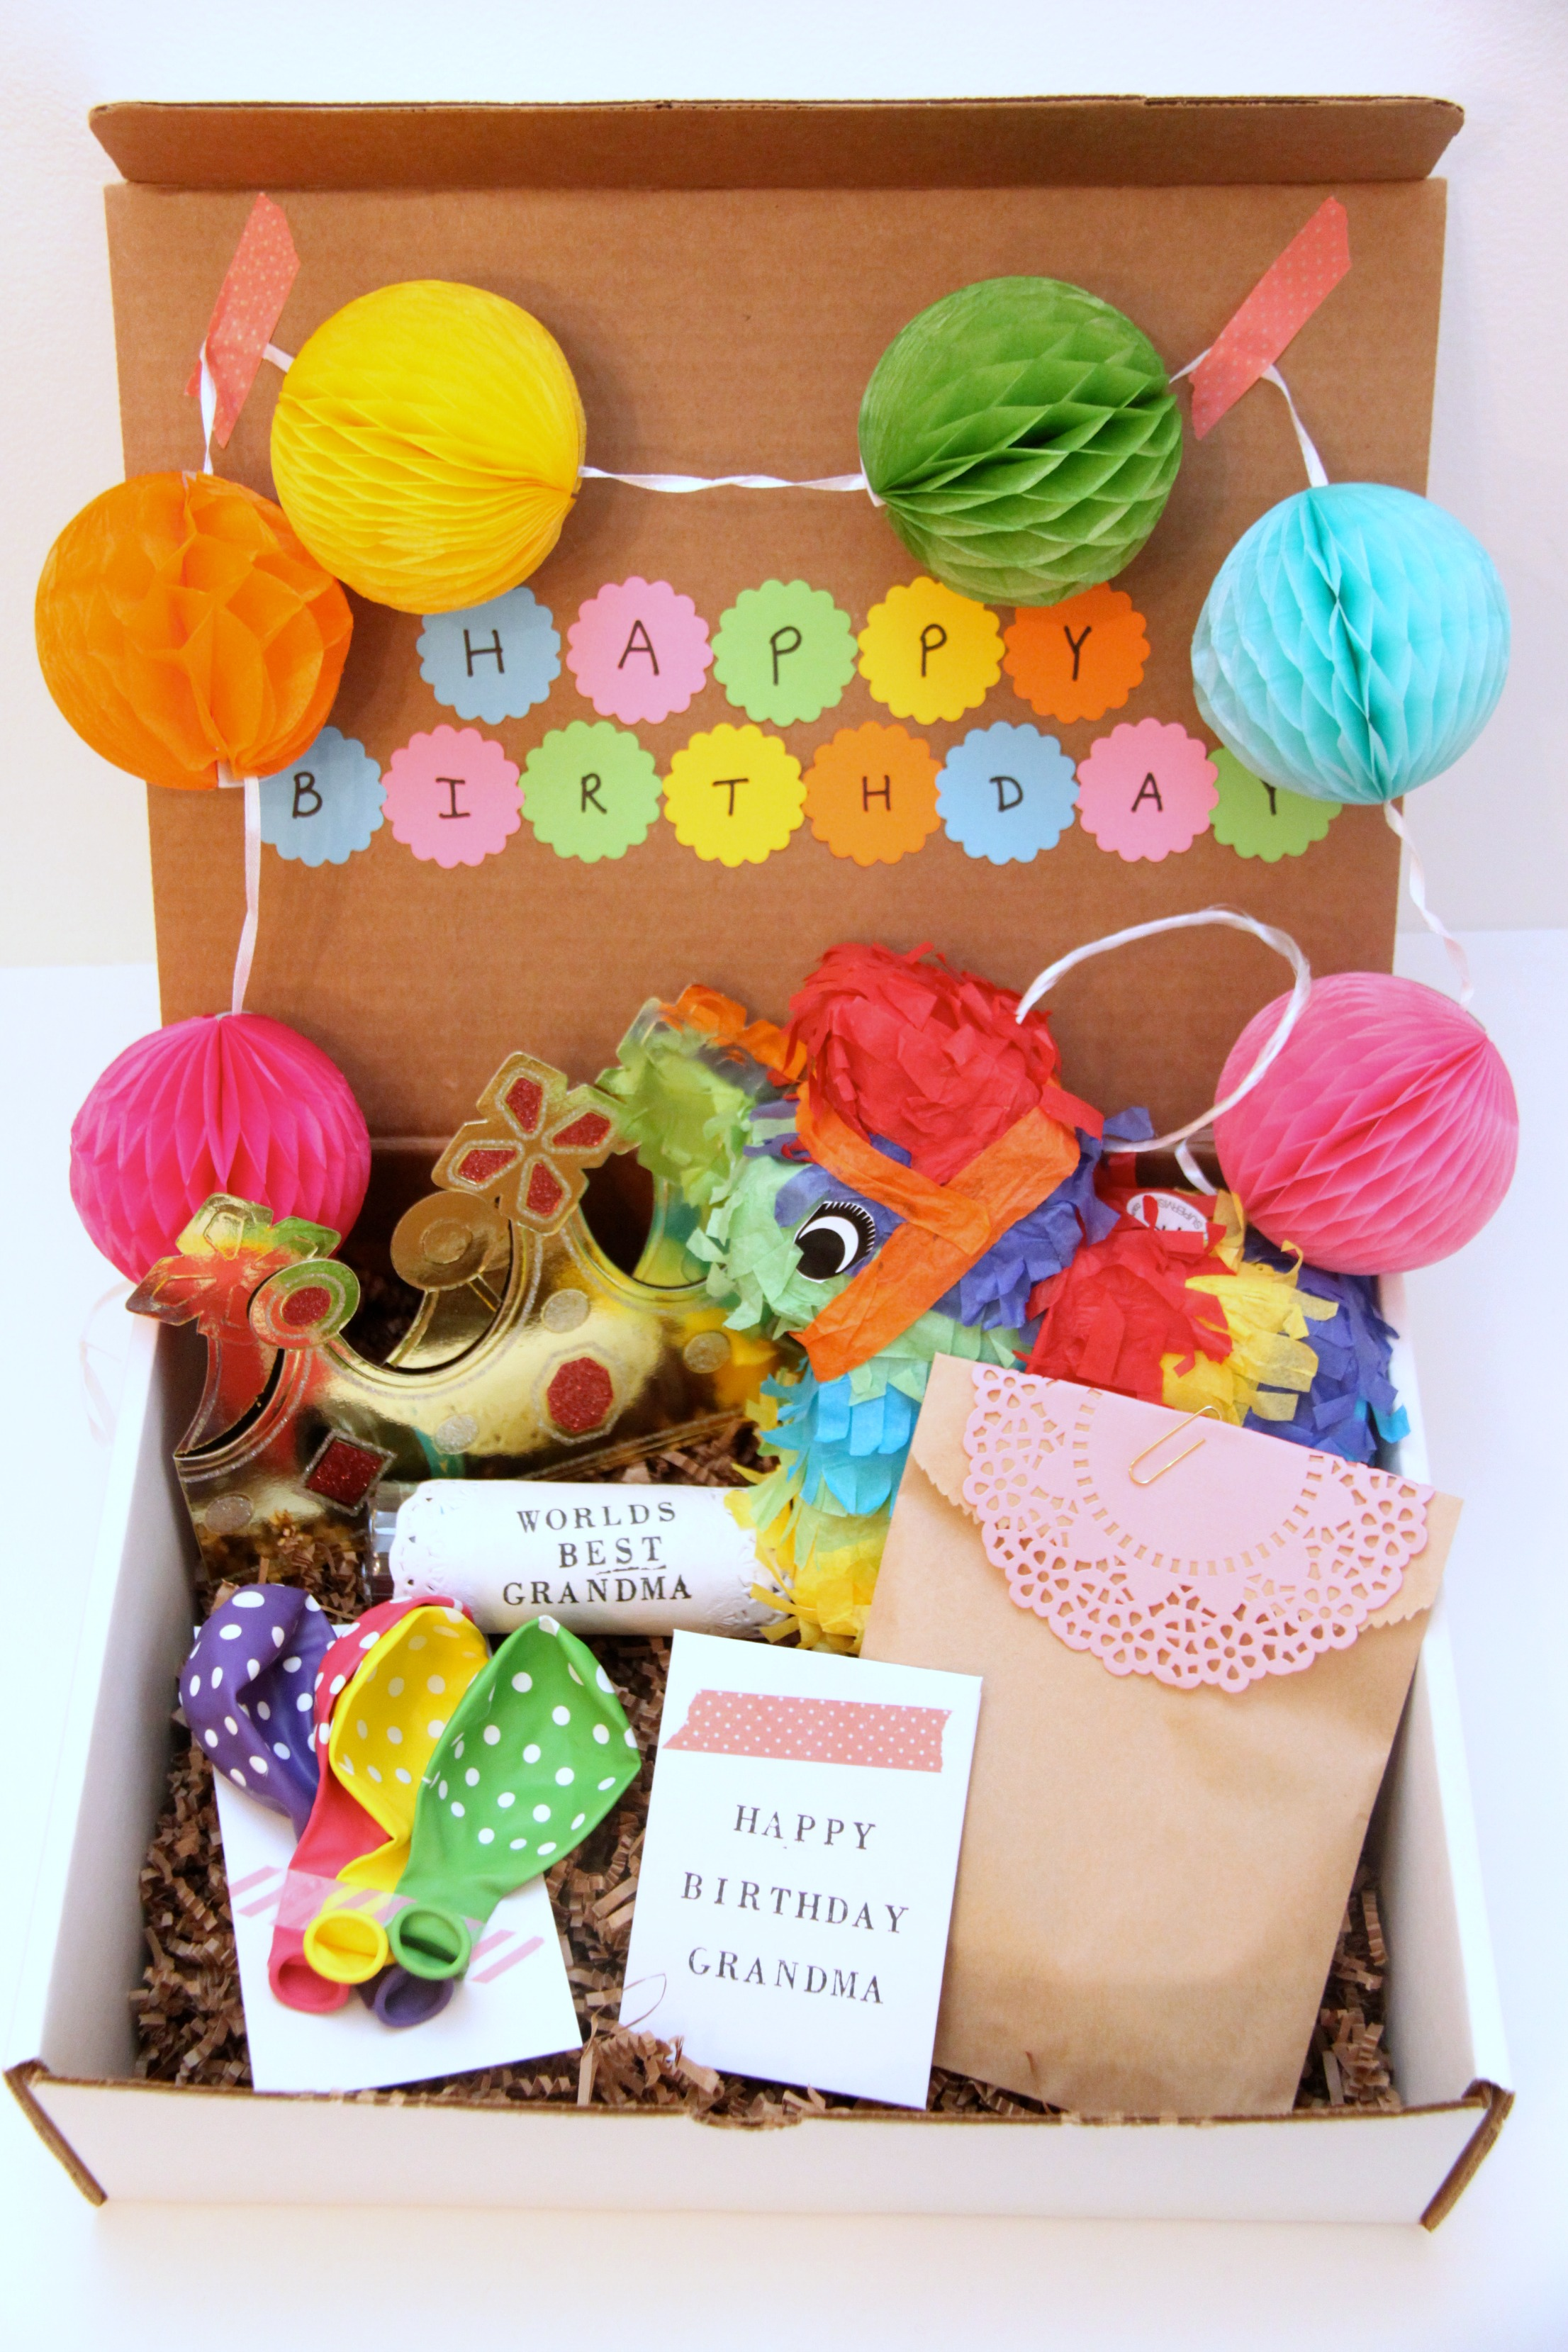 A Birthday-In-a-Box Gift for Grandma! - Smashed Peas & Carrots